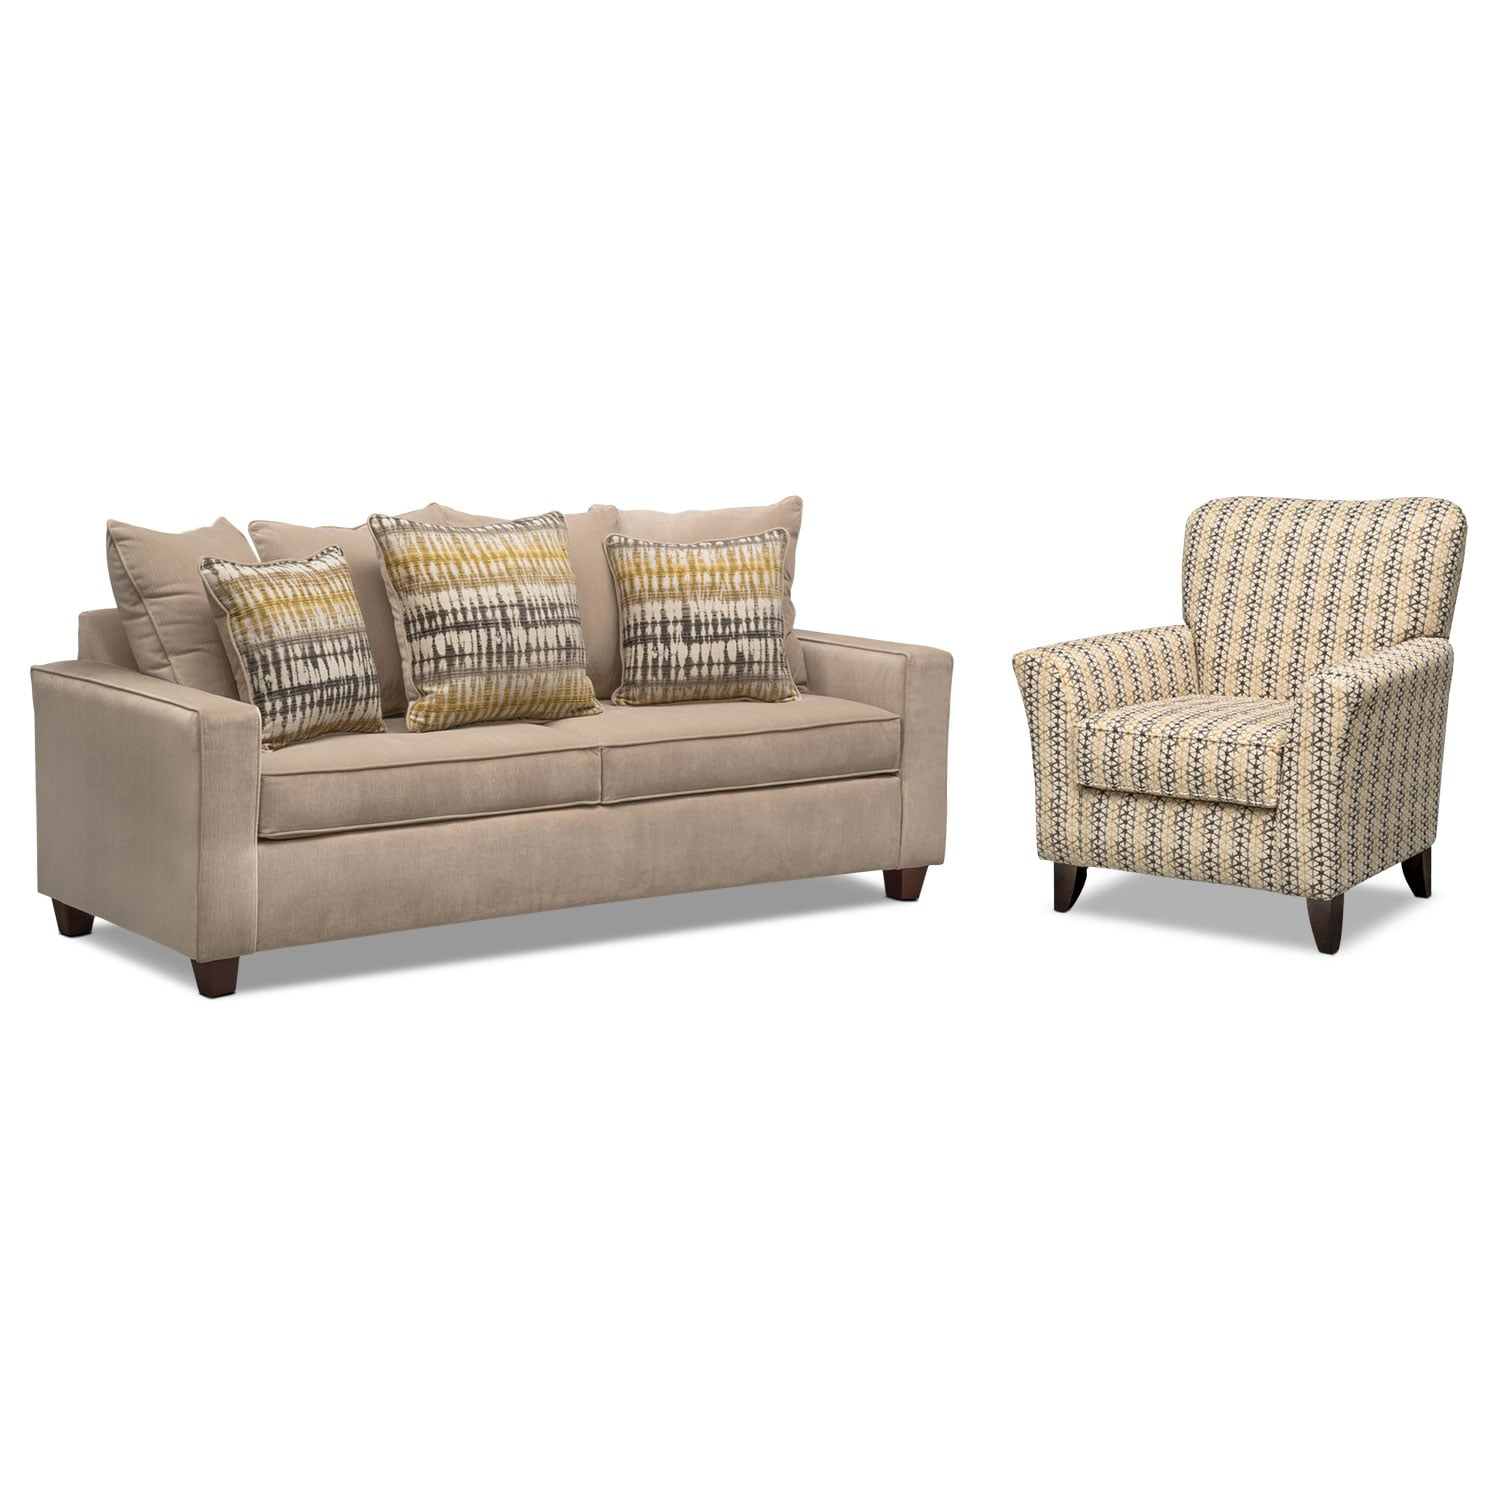 Bryden Queen Memory Foam Sleeper Sofa And Accent Chair Set